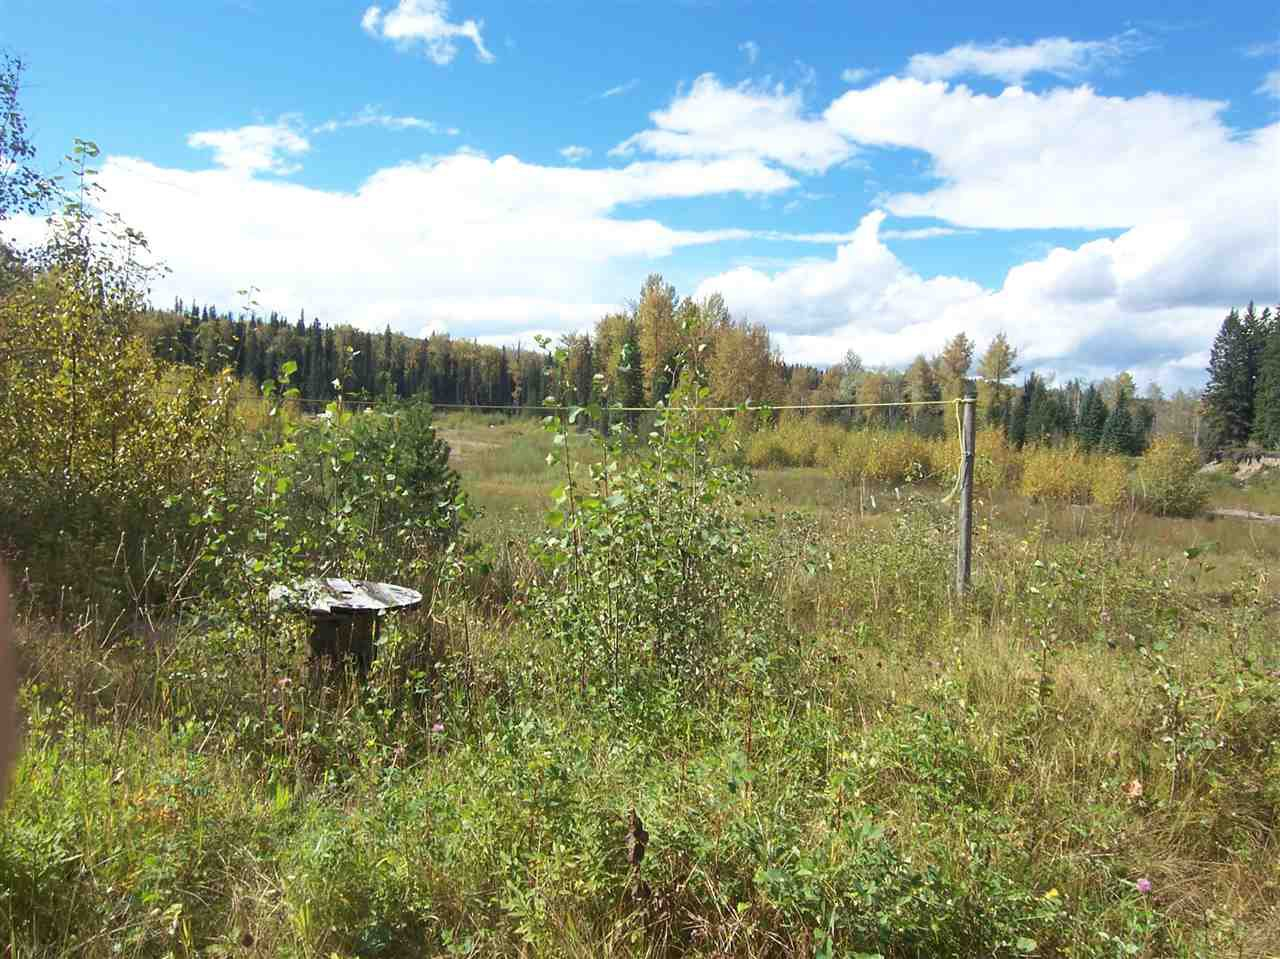 Photo 8: Photos: 4682 BARKERVILLE Highway in Quesnel: Quesnel - Rural North Land for sale (Quesnel (Zone 28))  : MLS®# R2105293